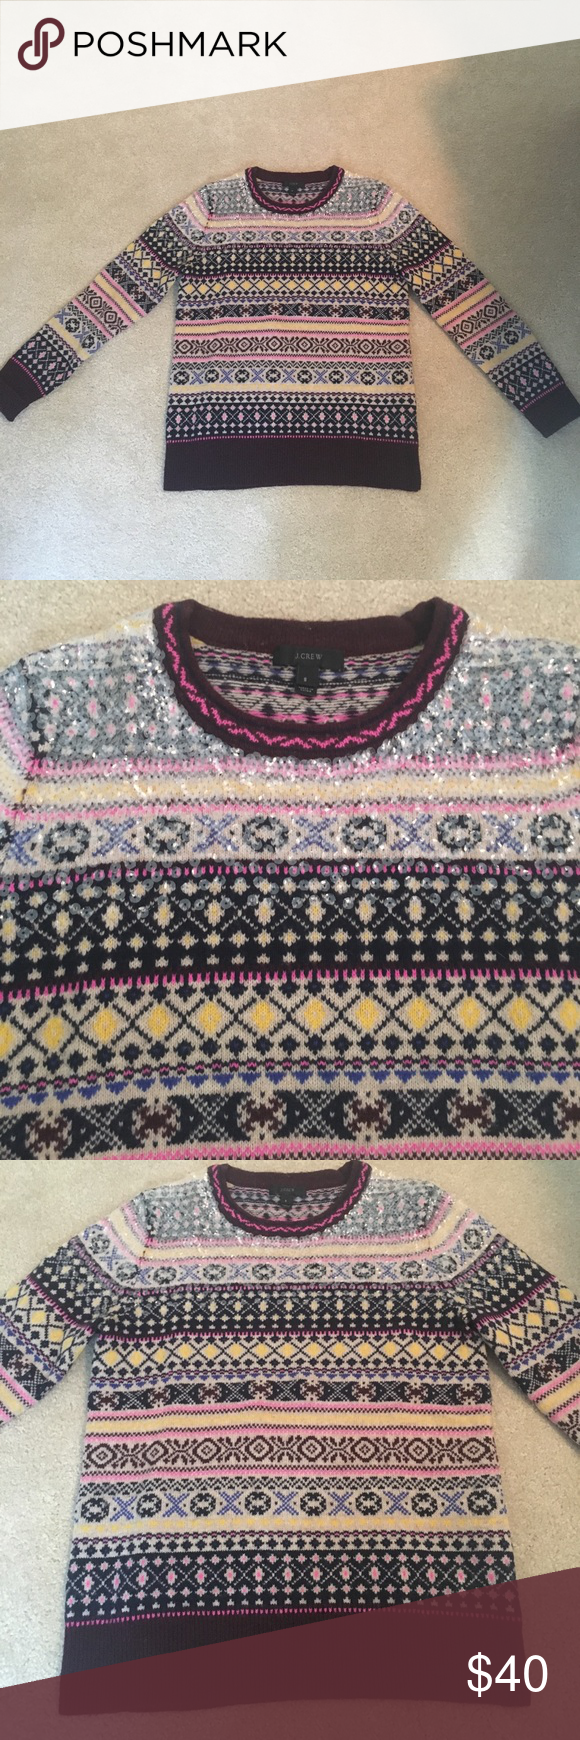 J. Crew Sequined Fair Isle sweater EUC - beautiful sweater with clear sequins on shoulders and Fair Isle pattern. Only worn a few times.  Maroons, pinks, yellows. J. Crew Sweaters Crew & Scoop Necks